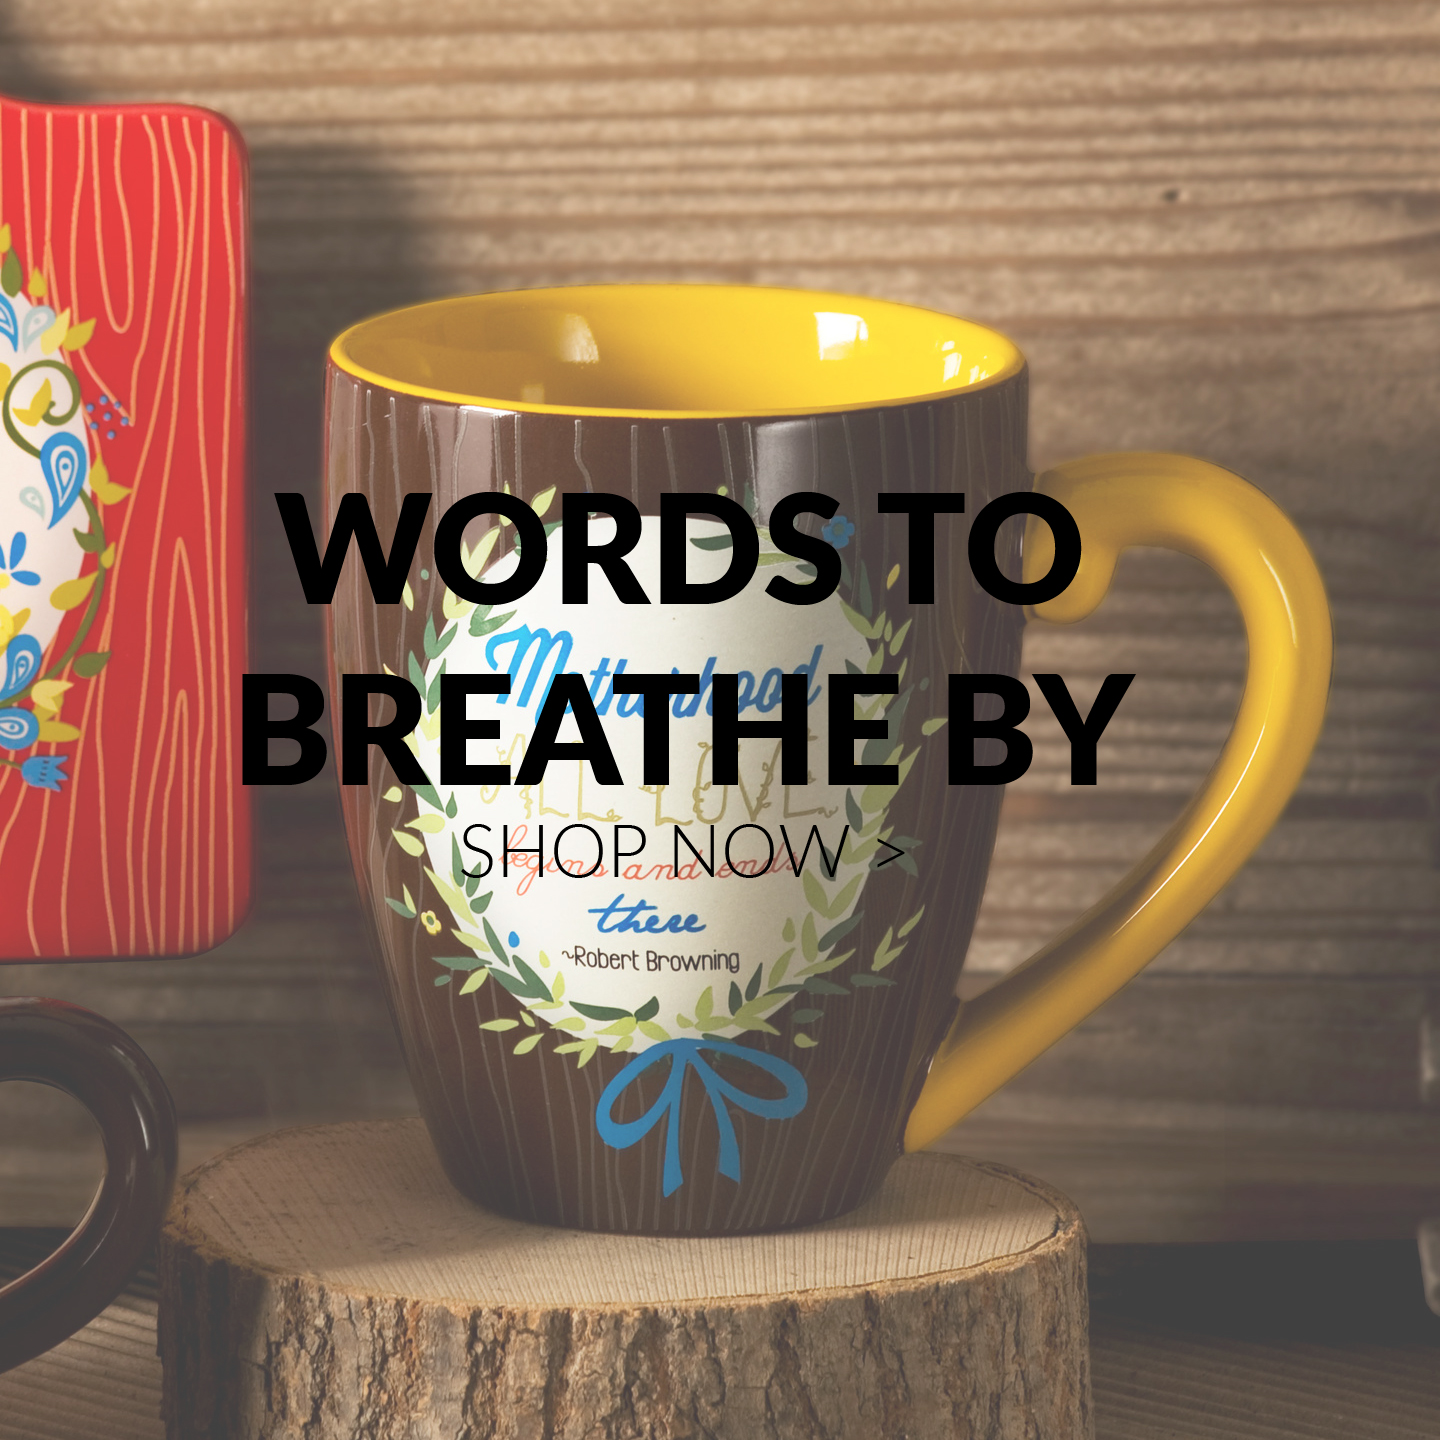 Words to Breathe By